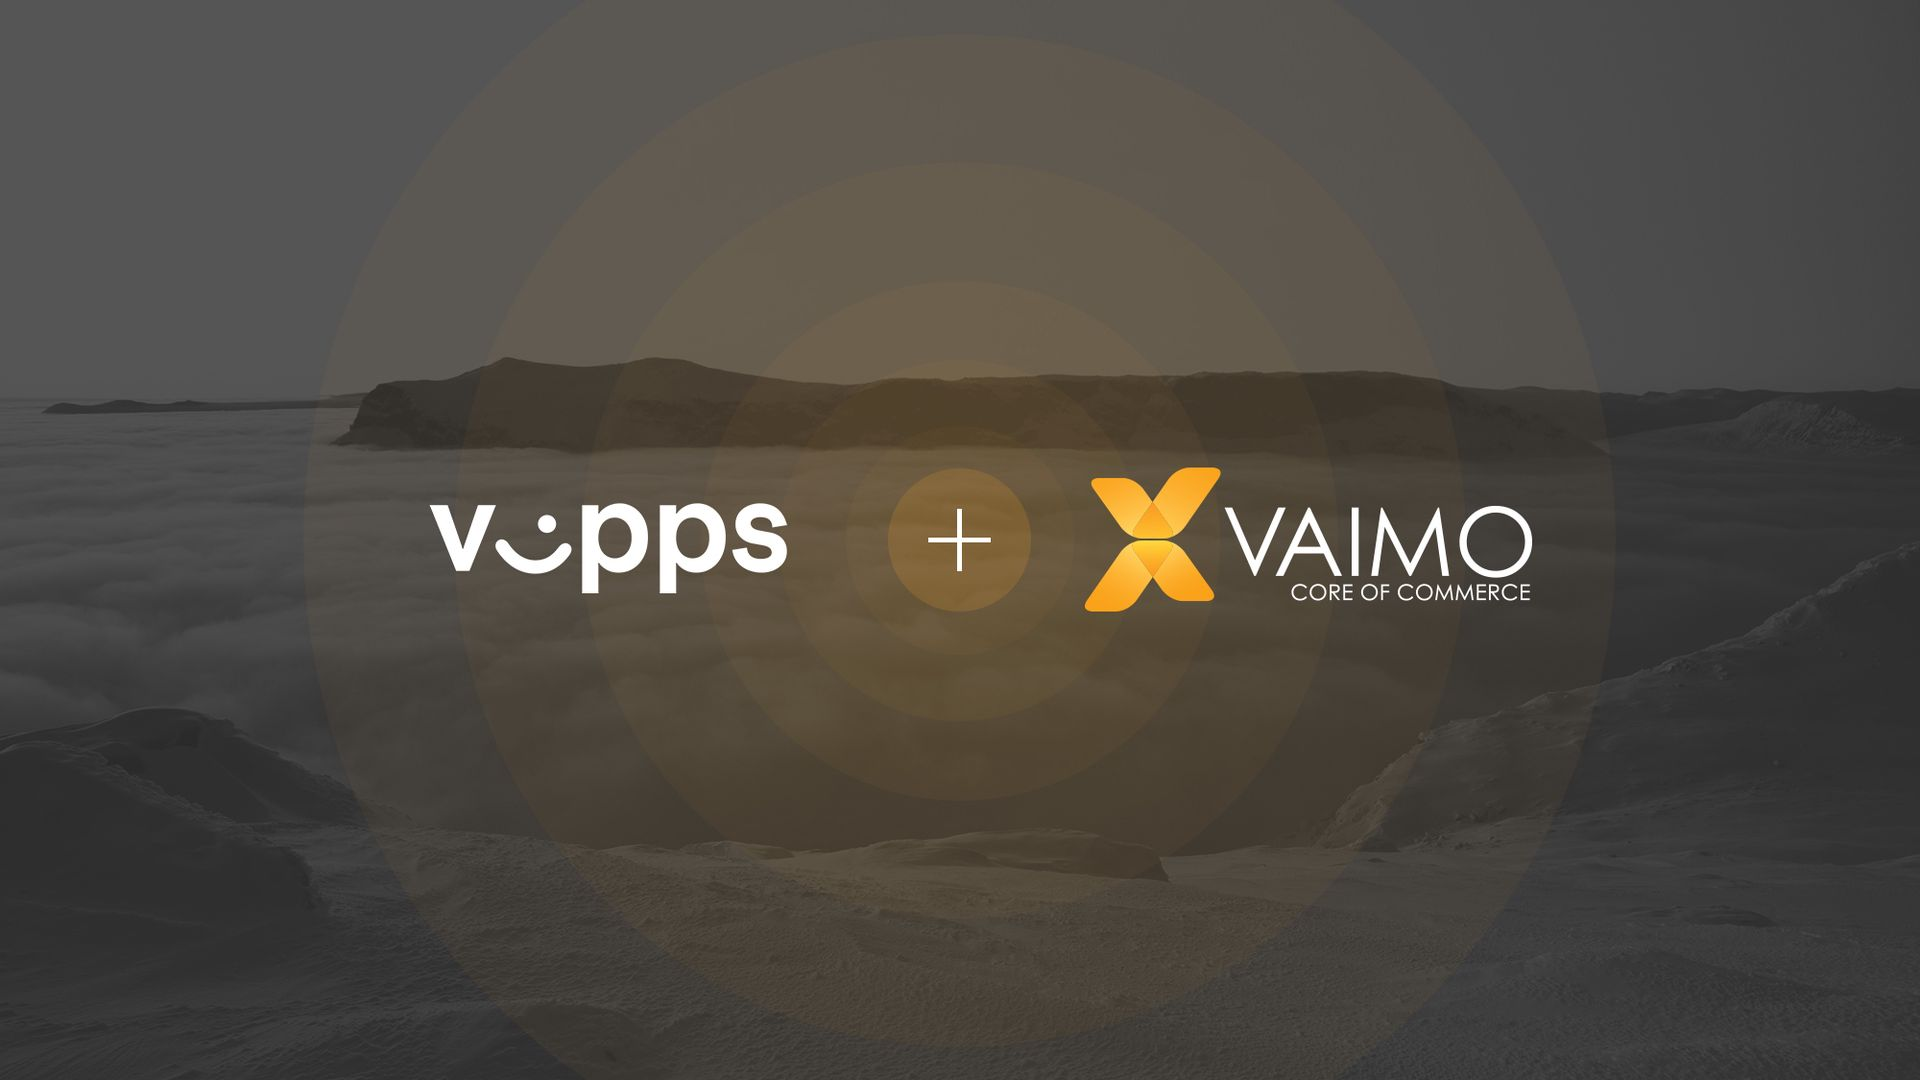 ANNONSE: Vaimo: Vipps offisiell Magento betalingsmodul